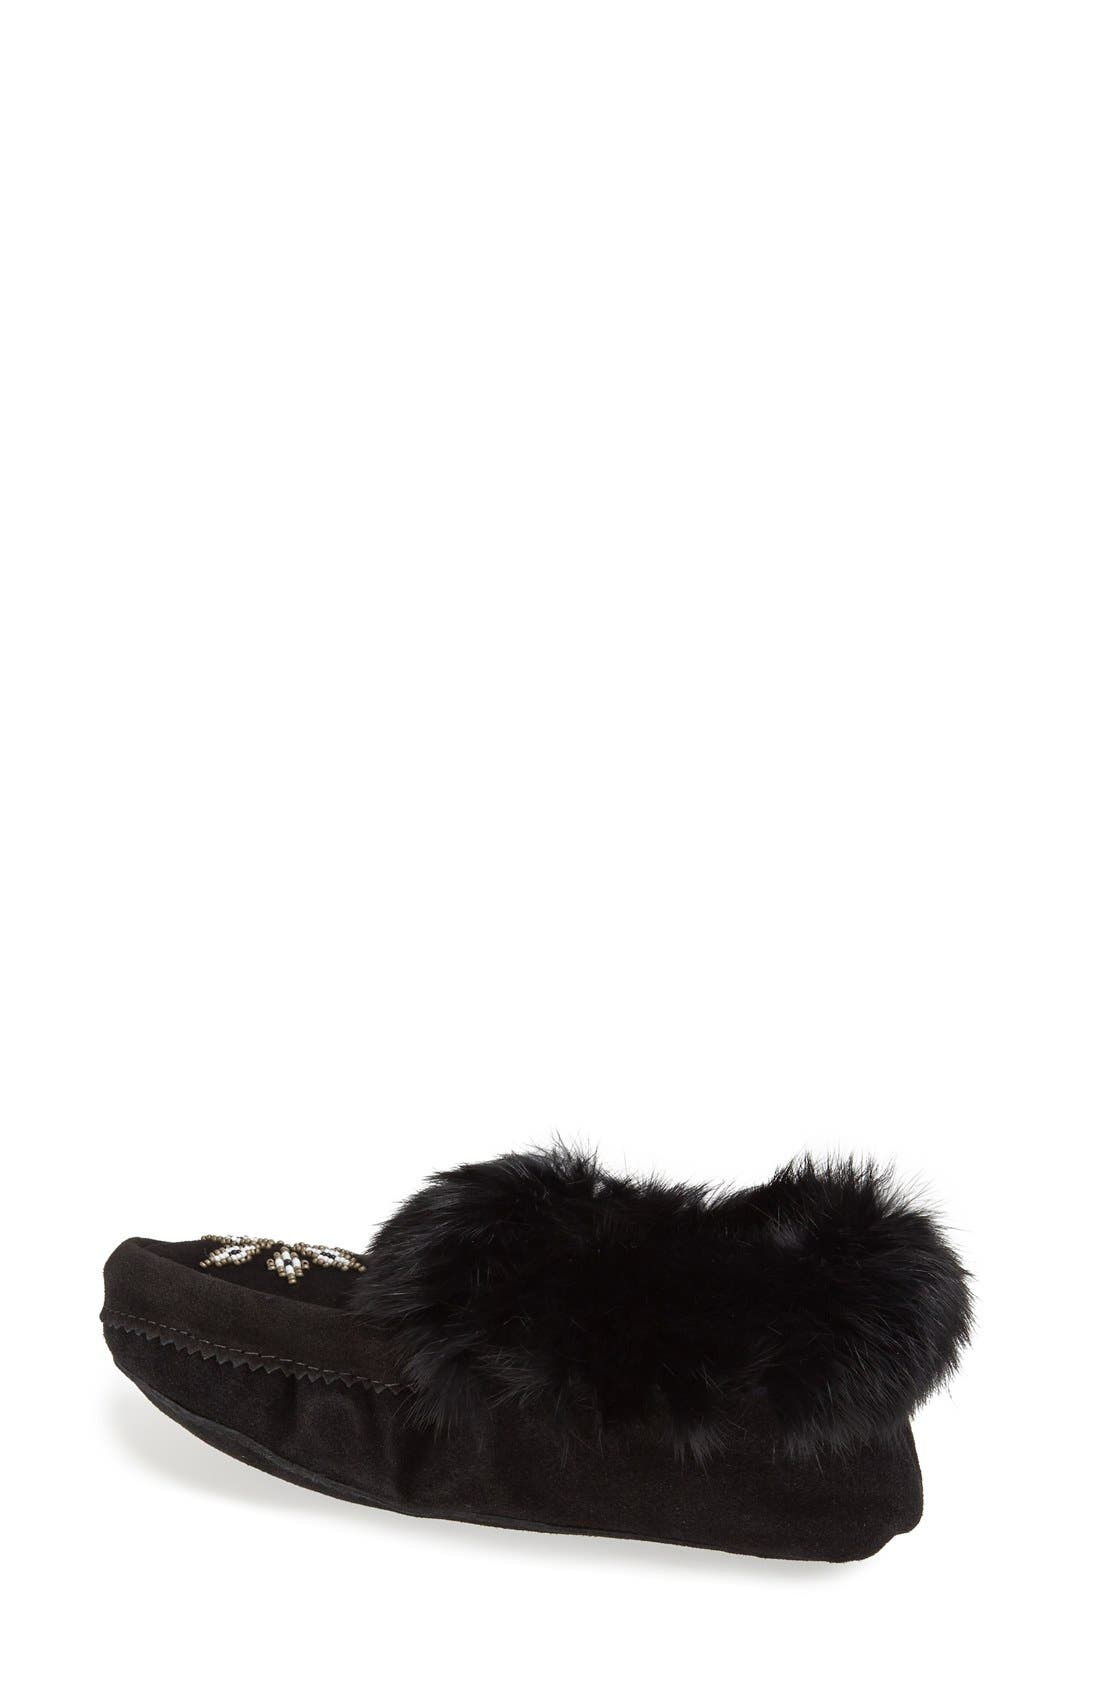 MANITOBAH MUKLUKS, 'Kanada' Genuine Rabbit Fur & Suede Moccasin Slipper, Alternate thumbnail 4, color, 001